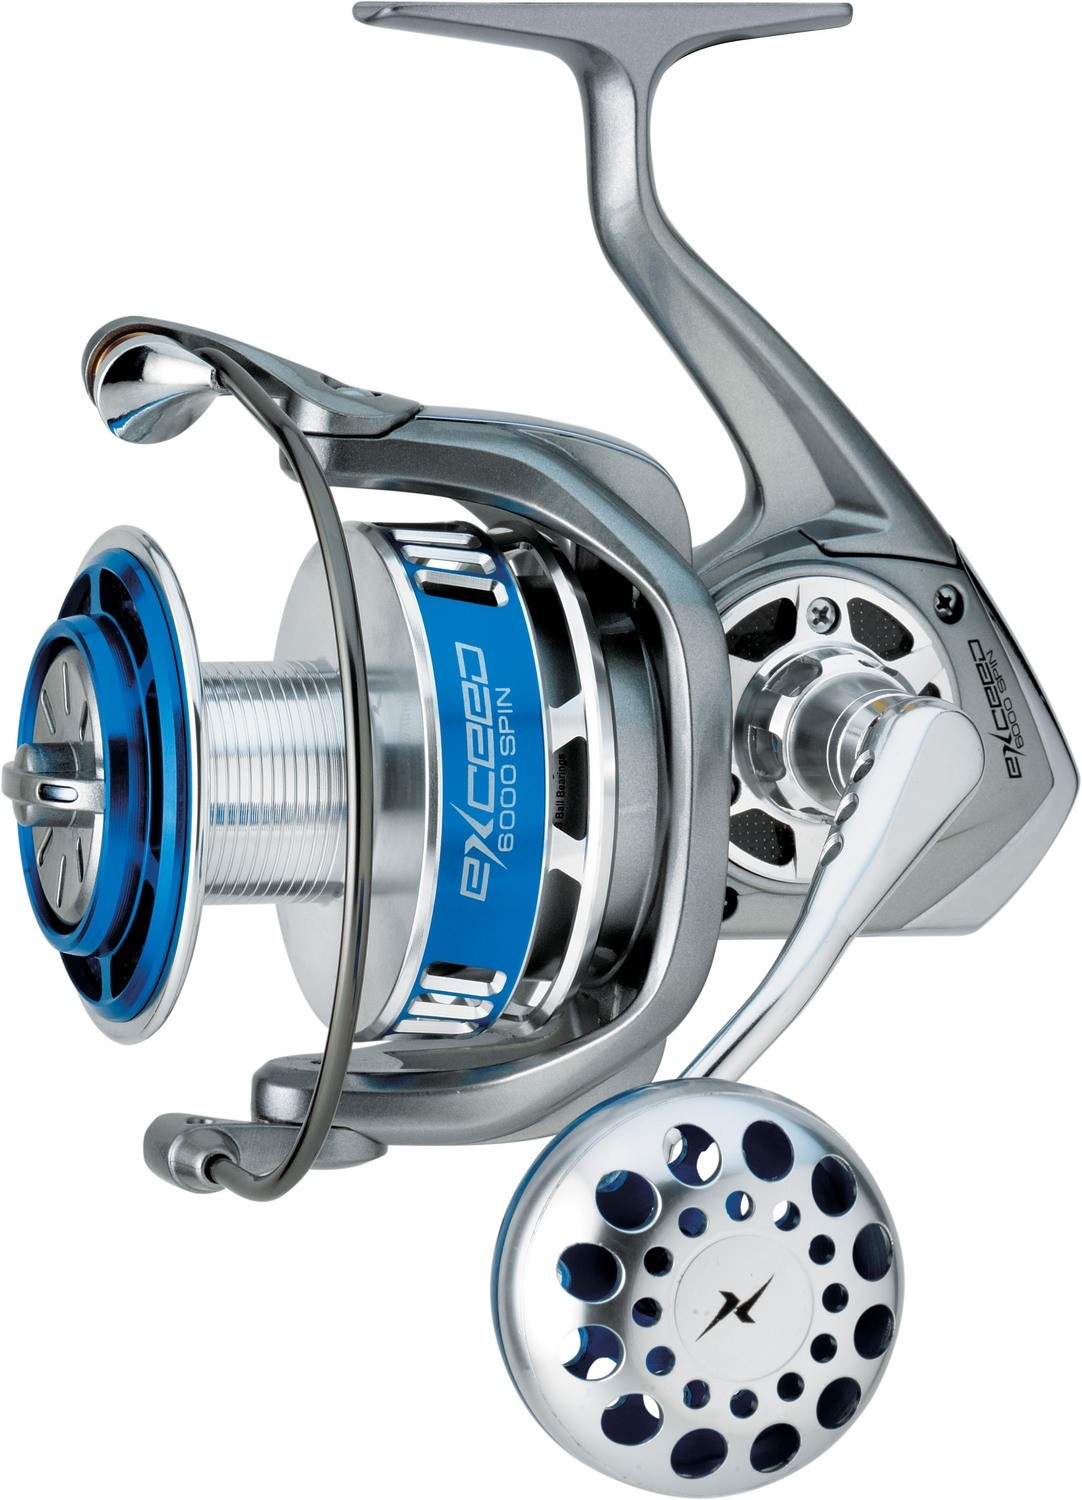 Trabucco Exceed  6000 spin Heavy duty saltwater reels